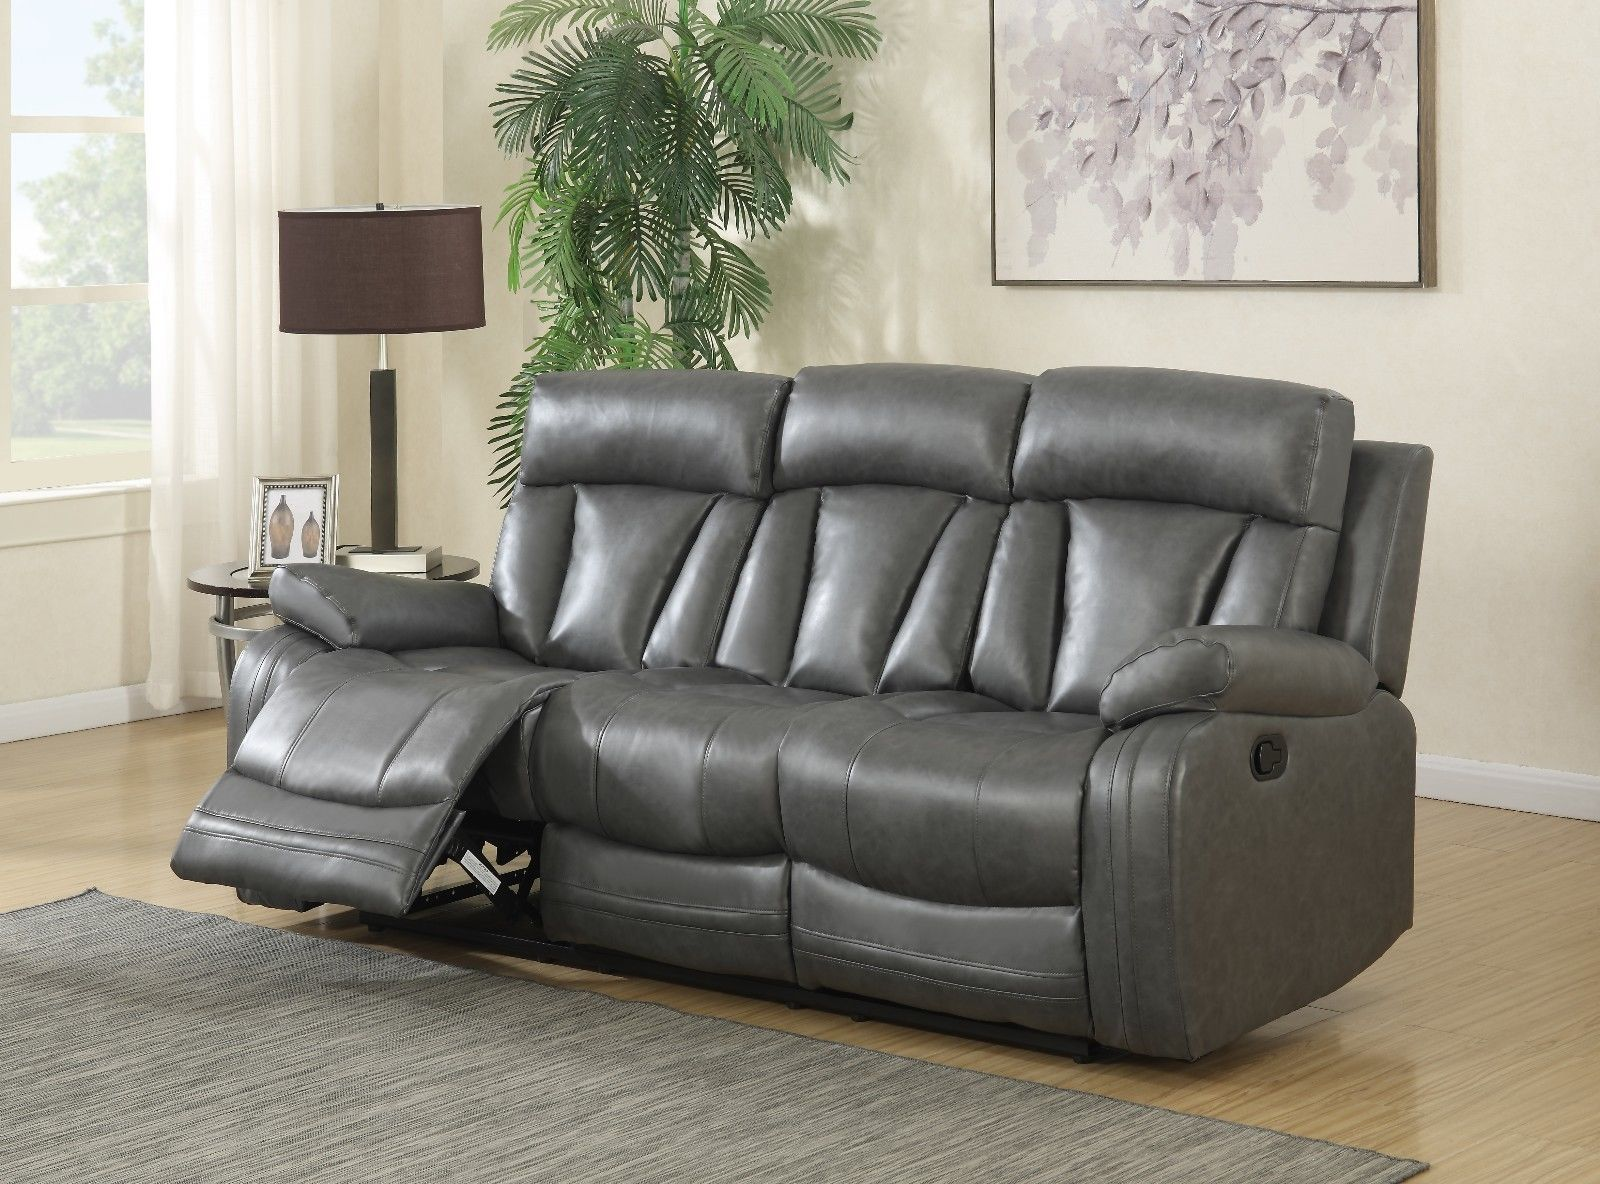 Meridian 645 Bonded Leather Living Room Sofa Set 2pc. Grey Contemporary Style